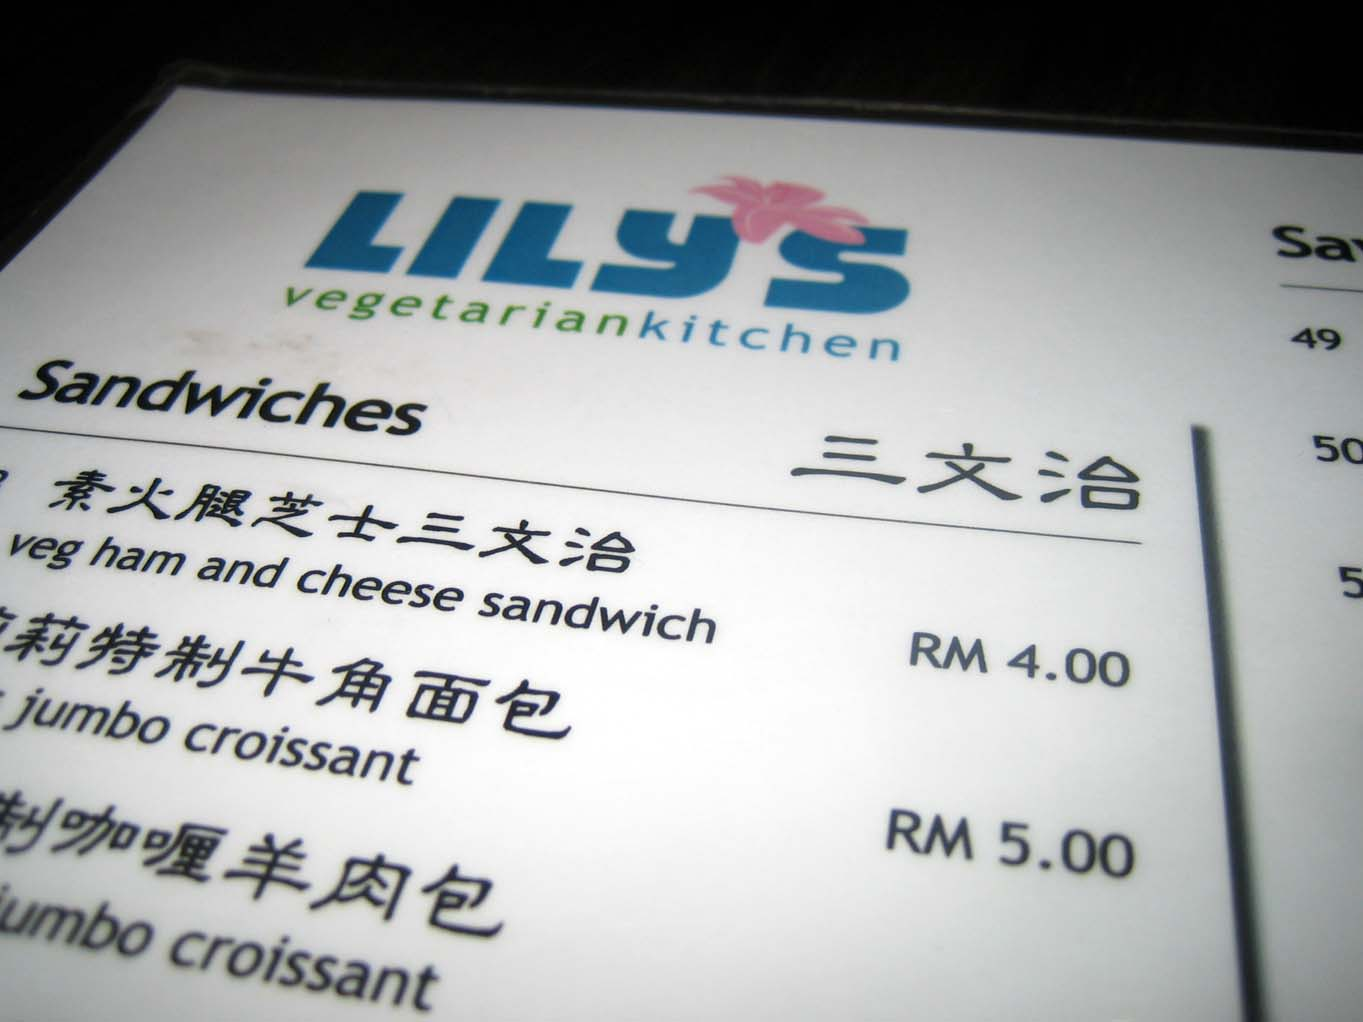 Lily's Vegetarian Kitchen